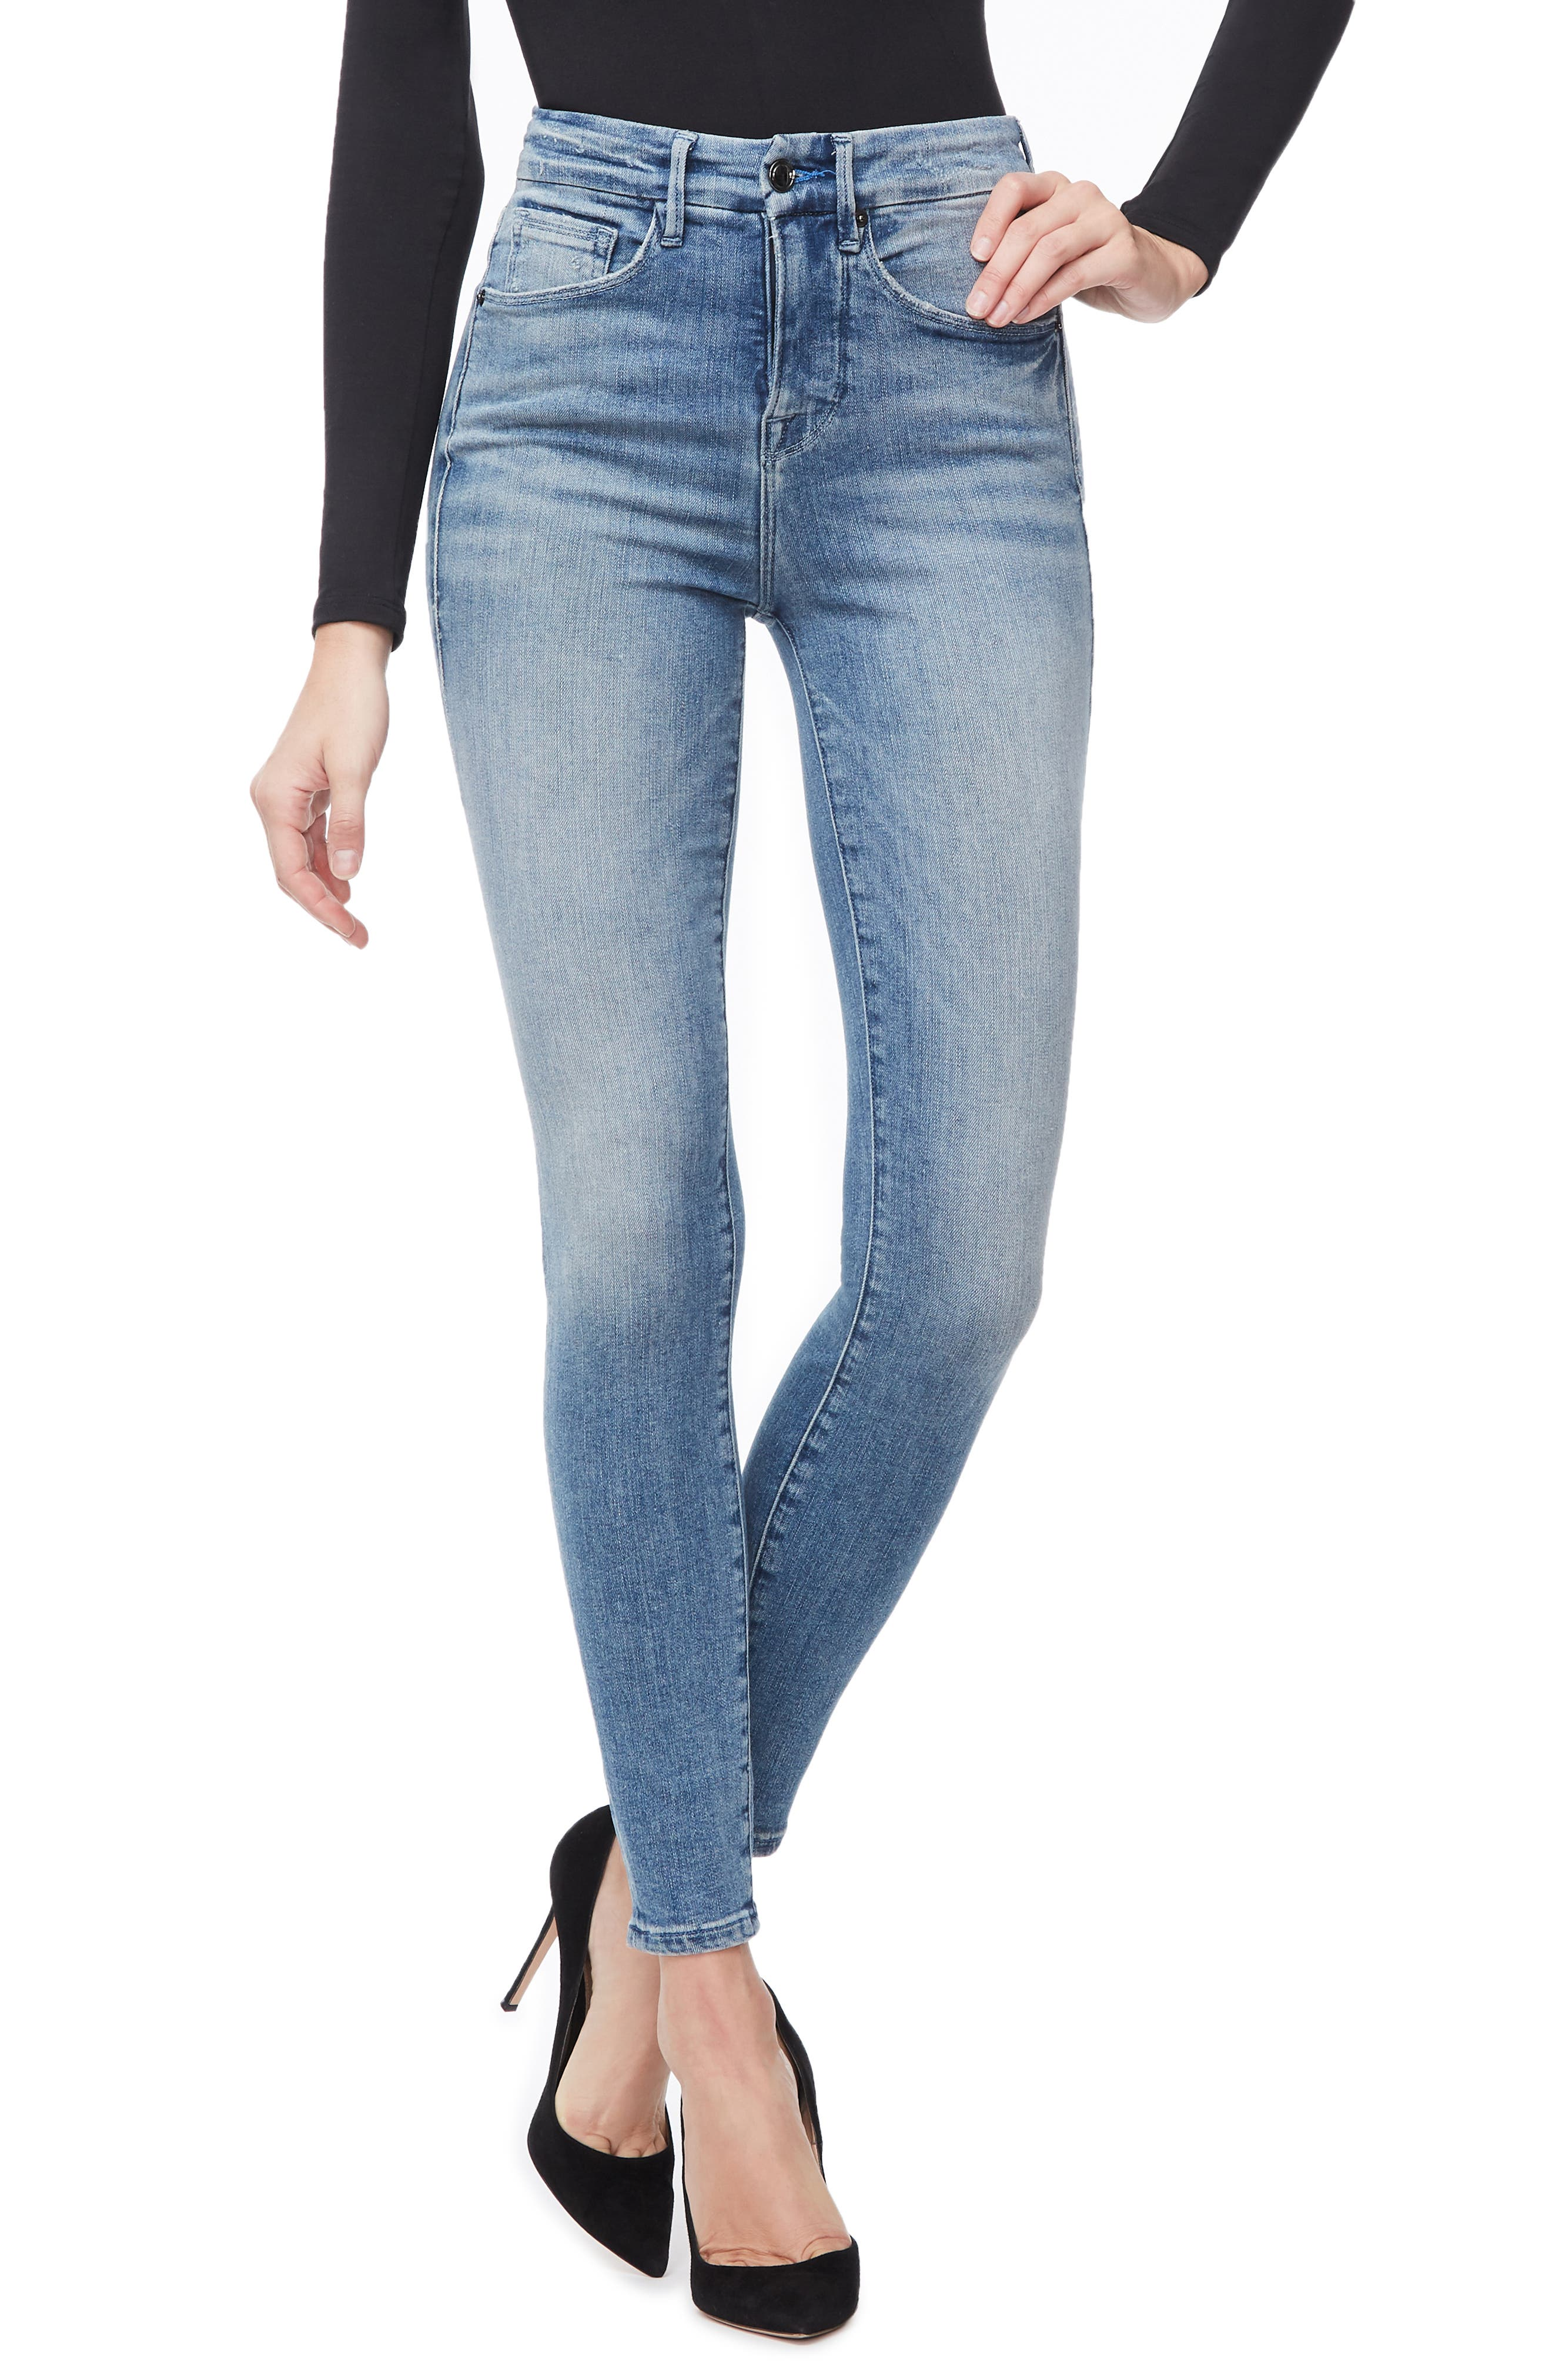 GOOD AMERICAN, Good Waist Ripped High Waist Skinny Jeans, Main thumbnail 1, color, BLUE262